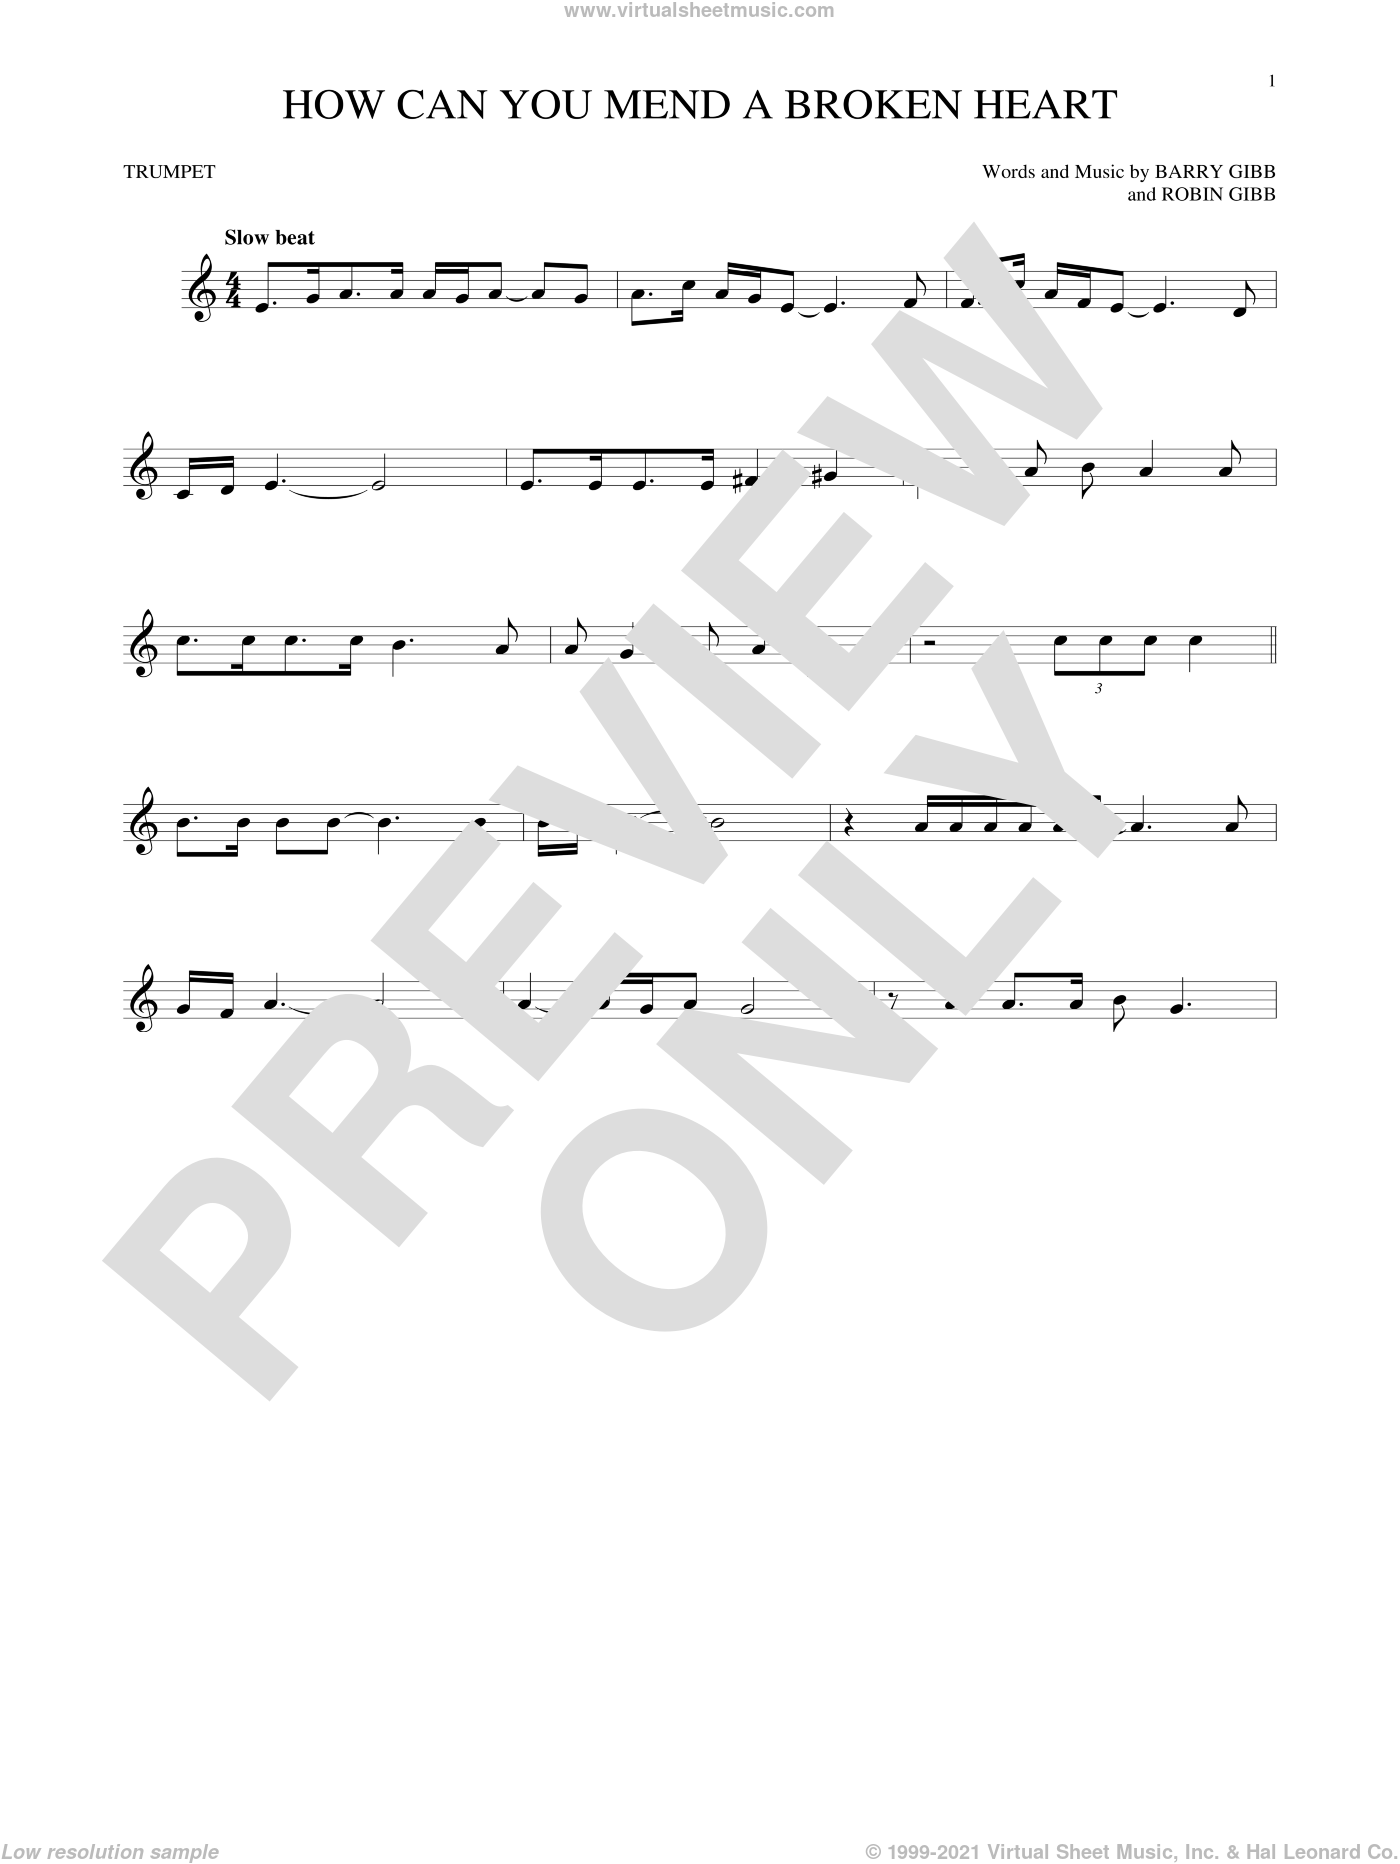 How Can You Mend A Broken Heart sheet music for trumpet solo by Barry Gibb, Bee Gees and Robin Gibb. Score Image Preview.